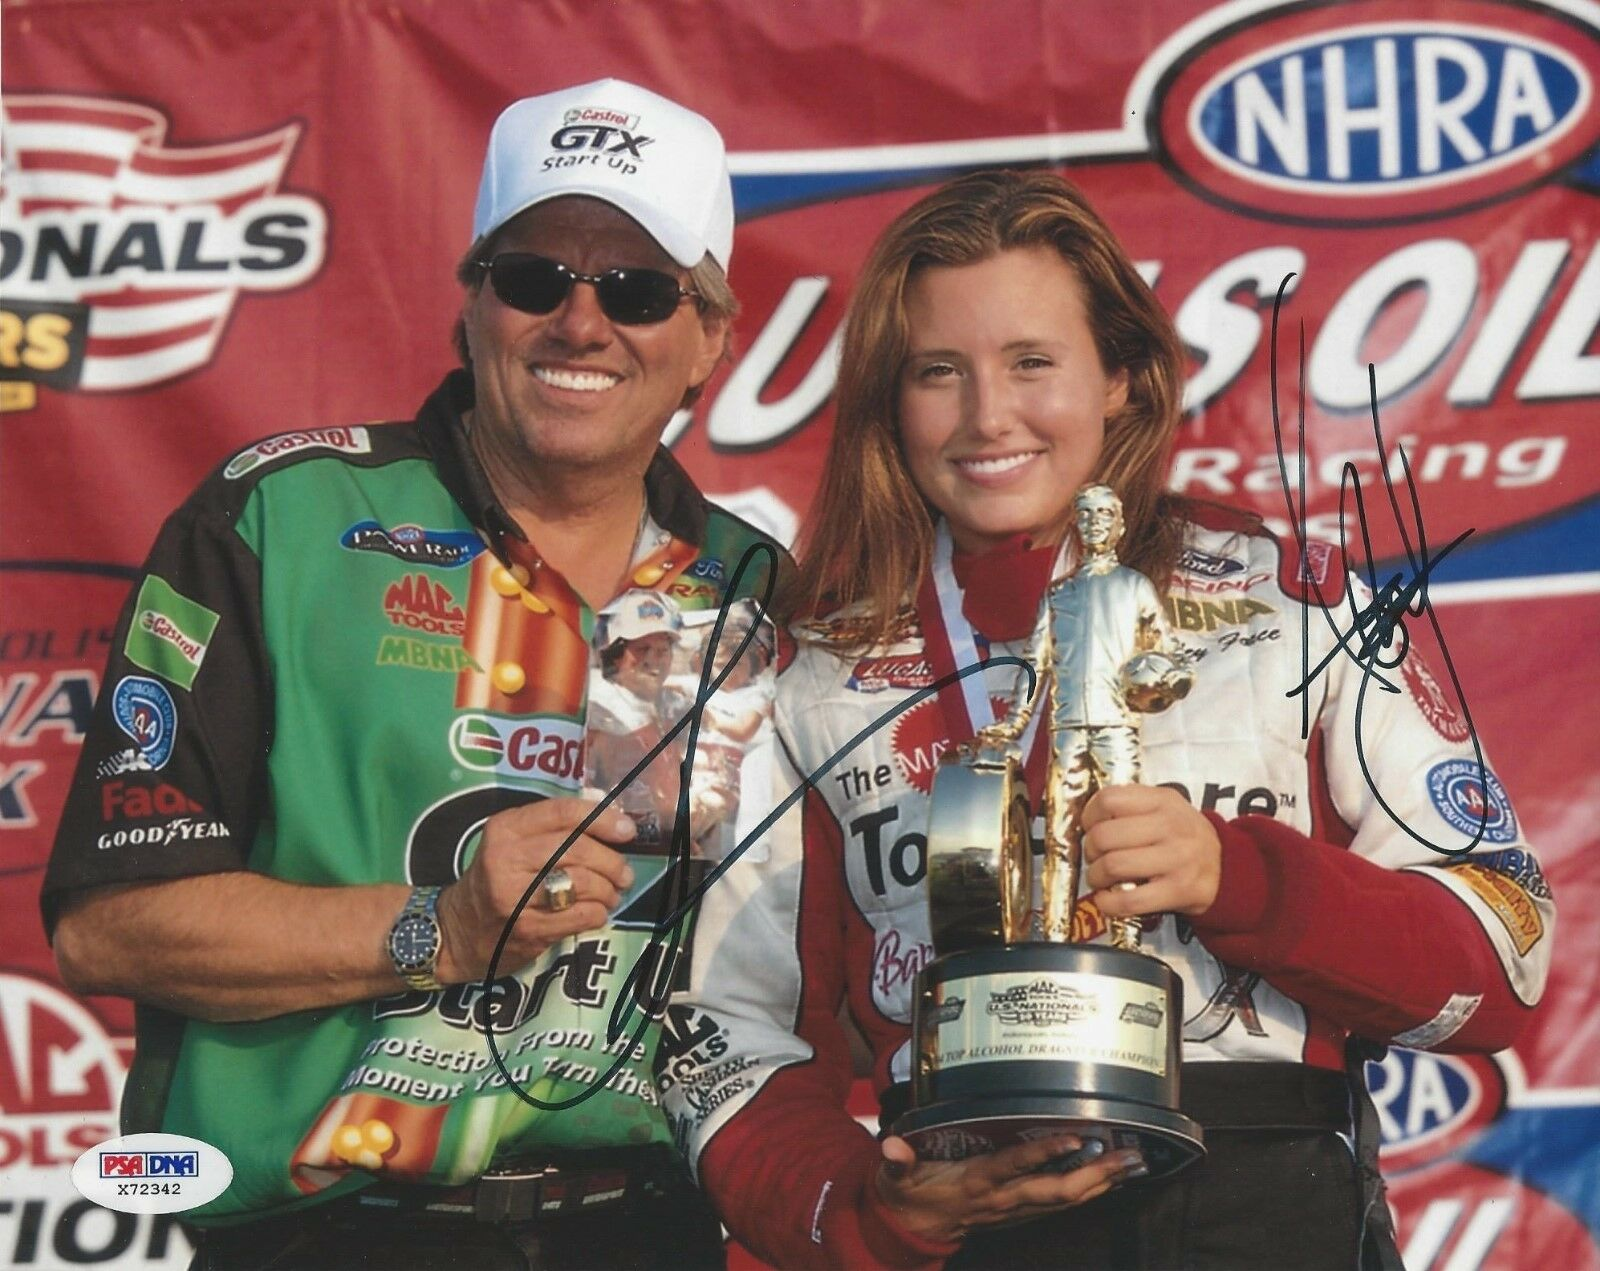 John Force & Ashley Force signed 8x10 PSA/DNA # X72342